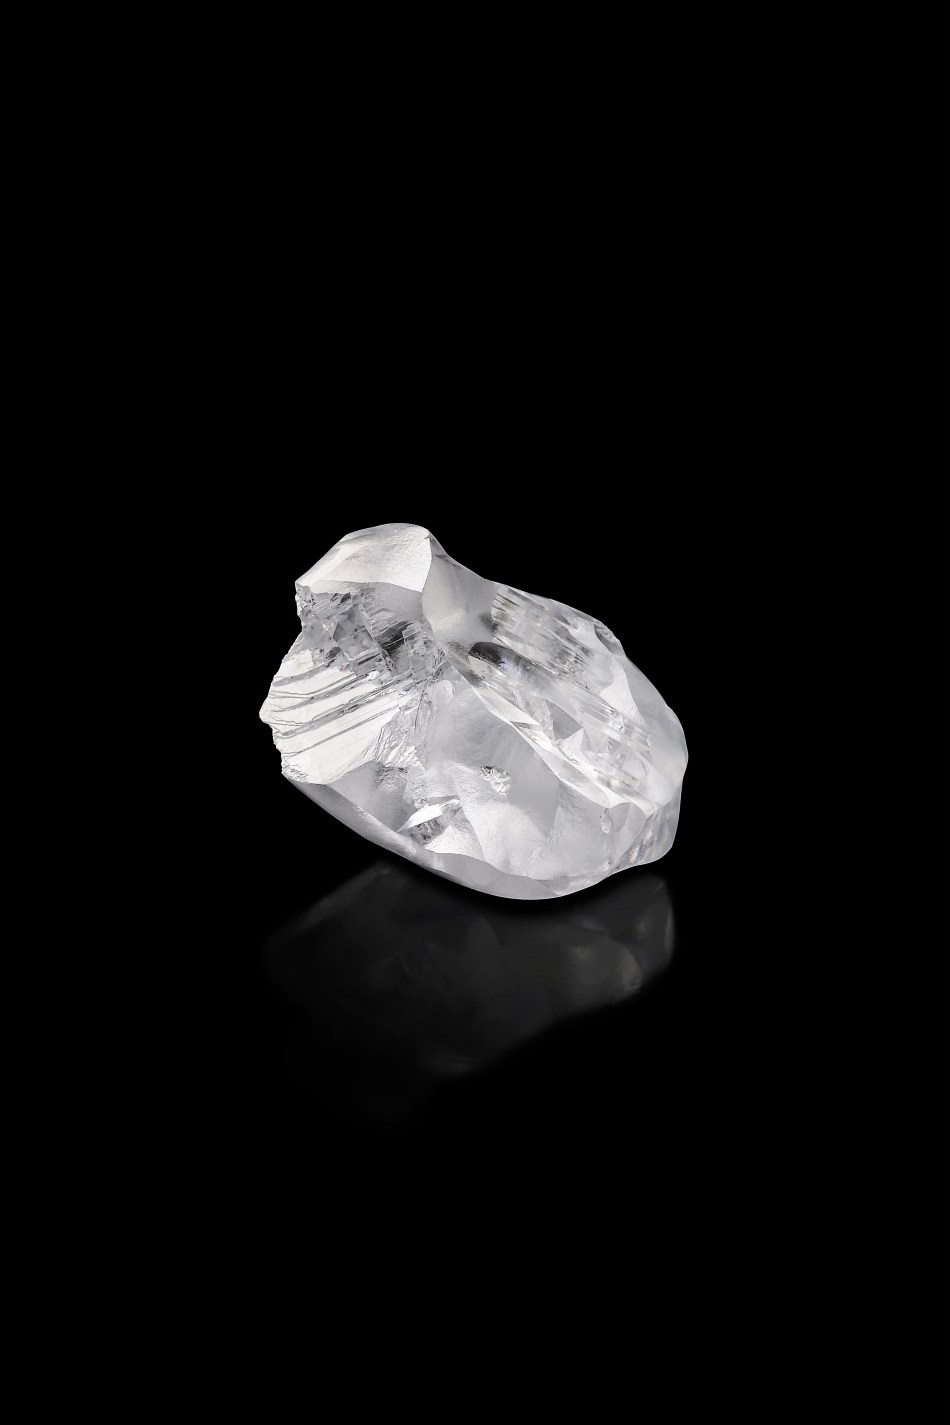 The Graff Vendome_314 carat rough